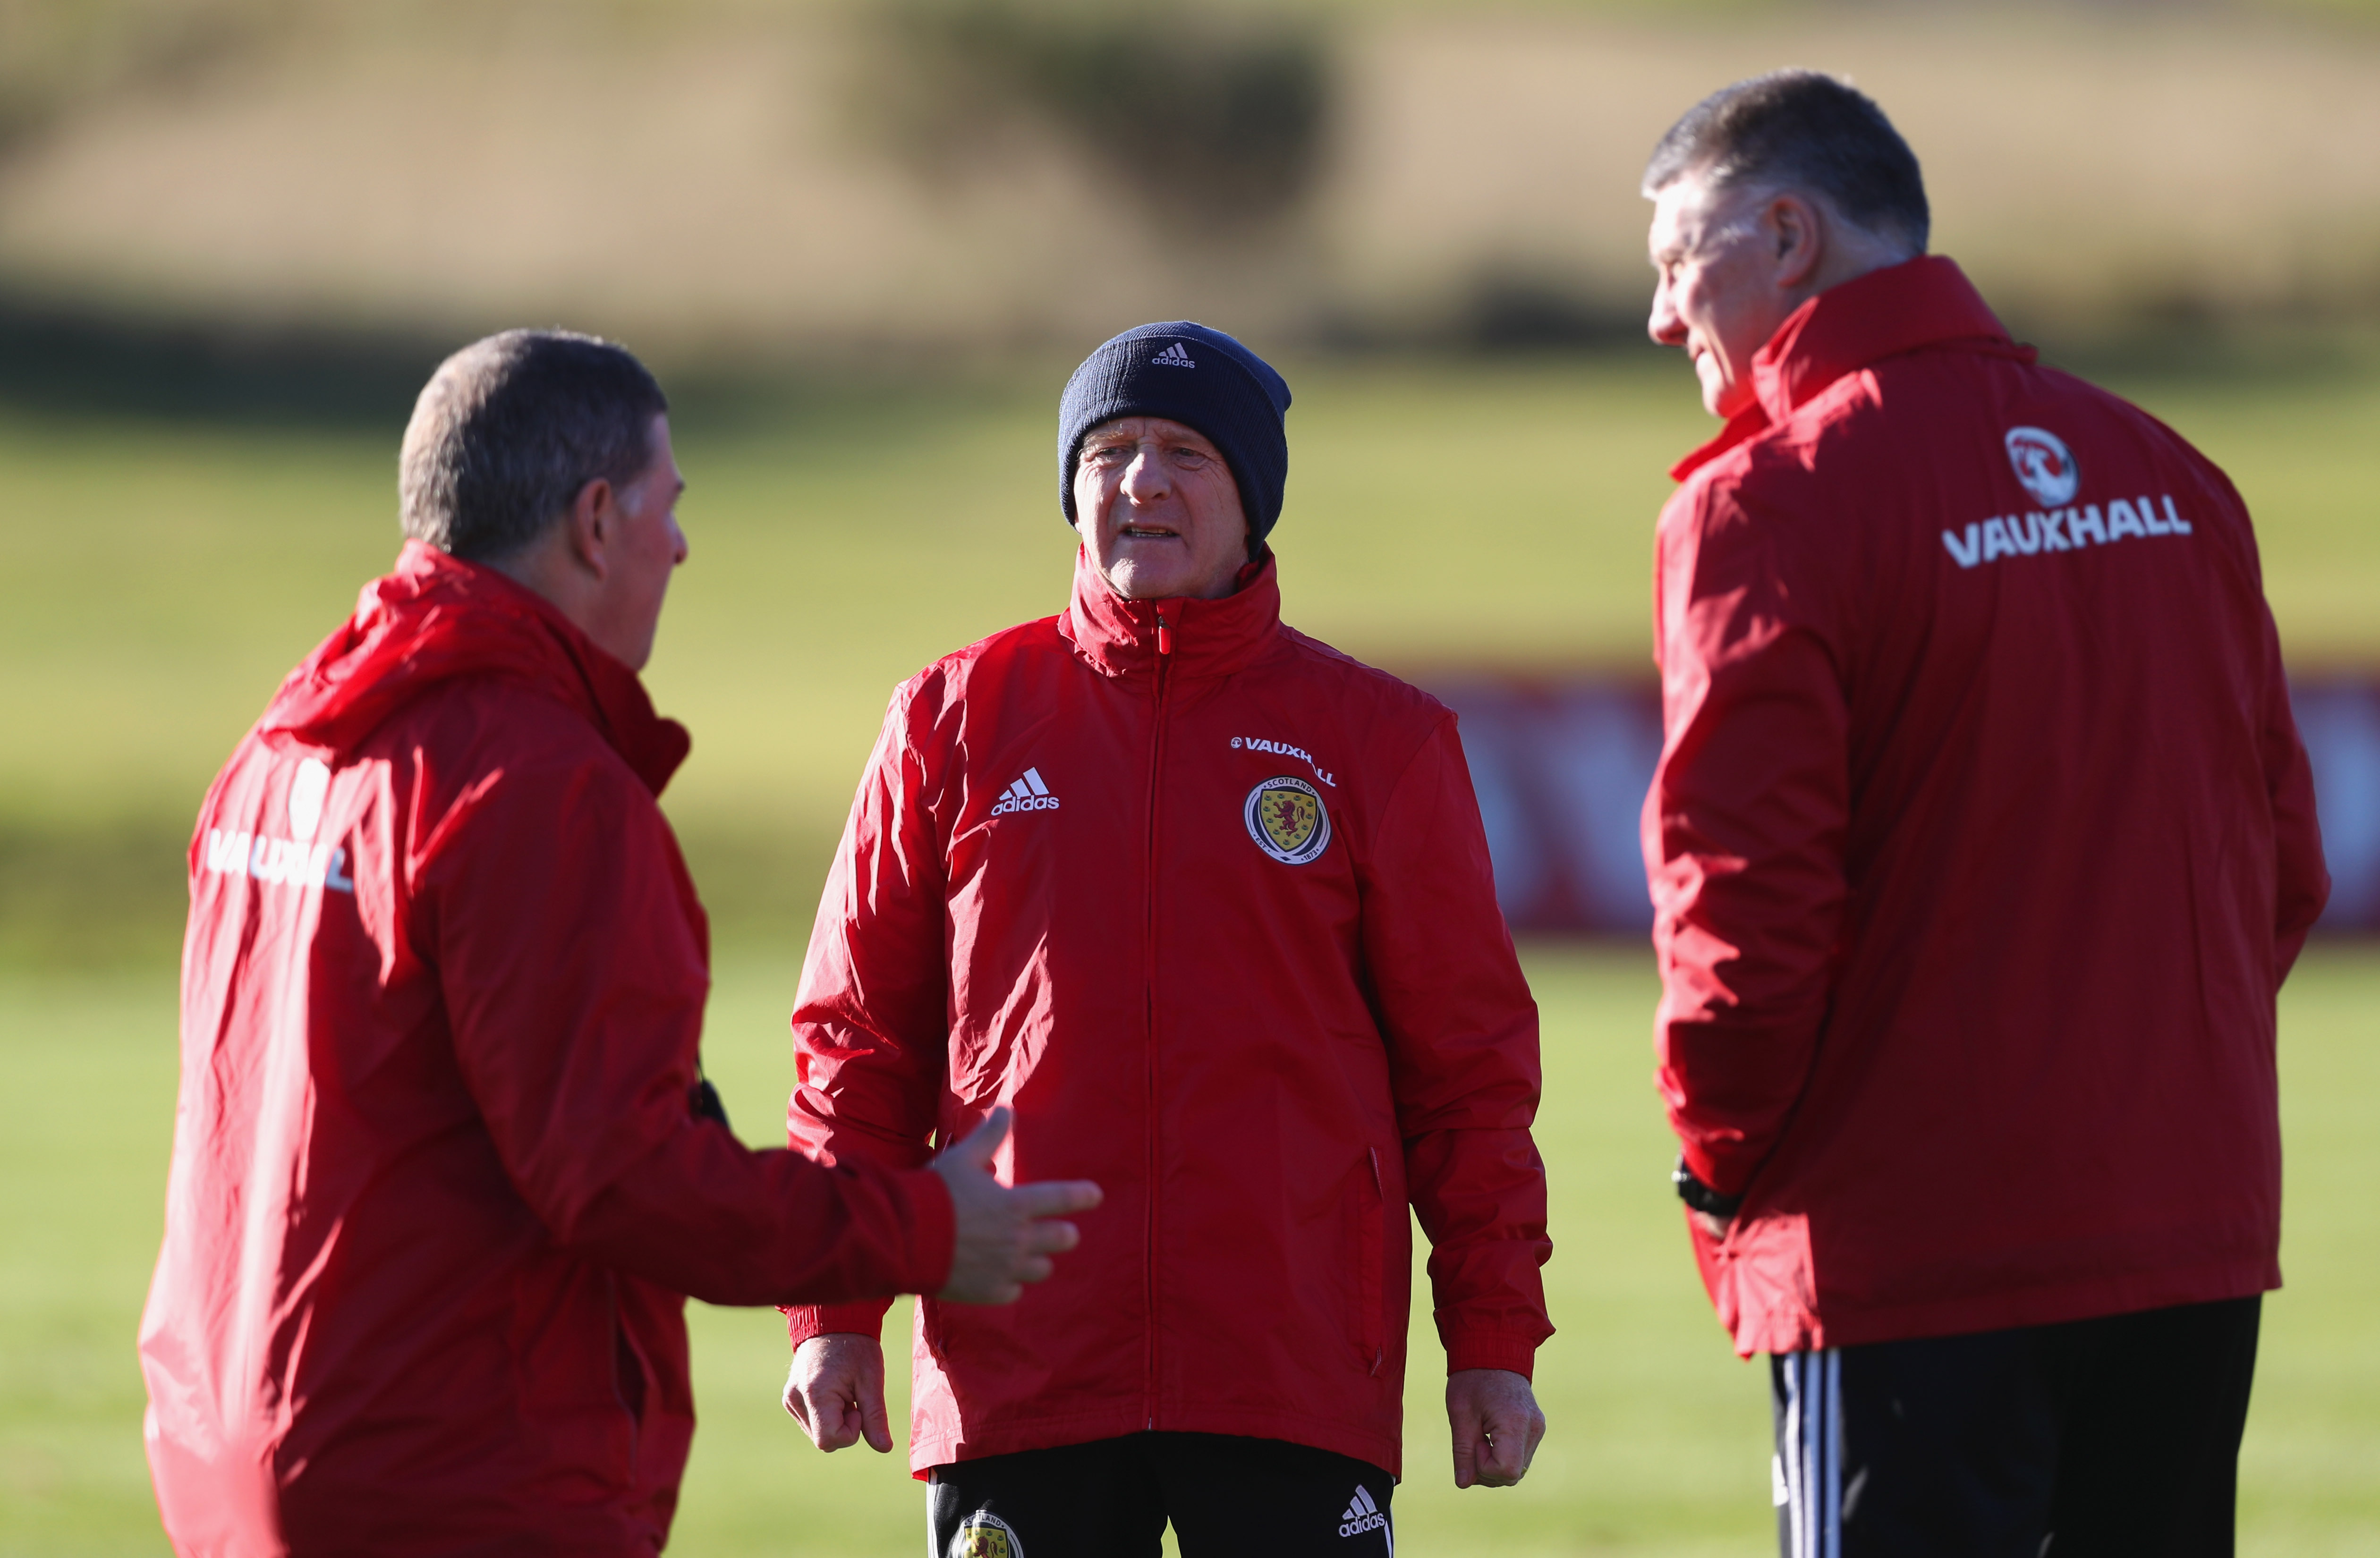 GLASGOW, SCOTLAND - NOVEMBER 07: Gordon Strachan manager of Scotland (C) in discussion with assistant coaches Mark McGhee (L) and goalkeeping coach Jim Stewart (R) during a Scotland training session at Mar Hall on November 7, 2016 in Glasgow, Scotland. Scotland are due to face England in a World Cup qualifier on November 11th at Wembley. (Photo by Ian MacNicol/Getty Images)